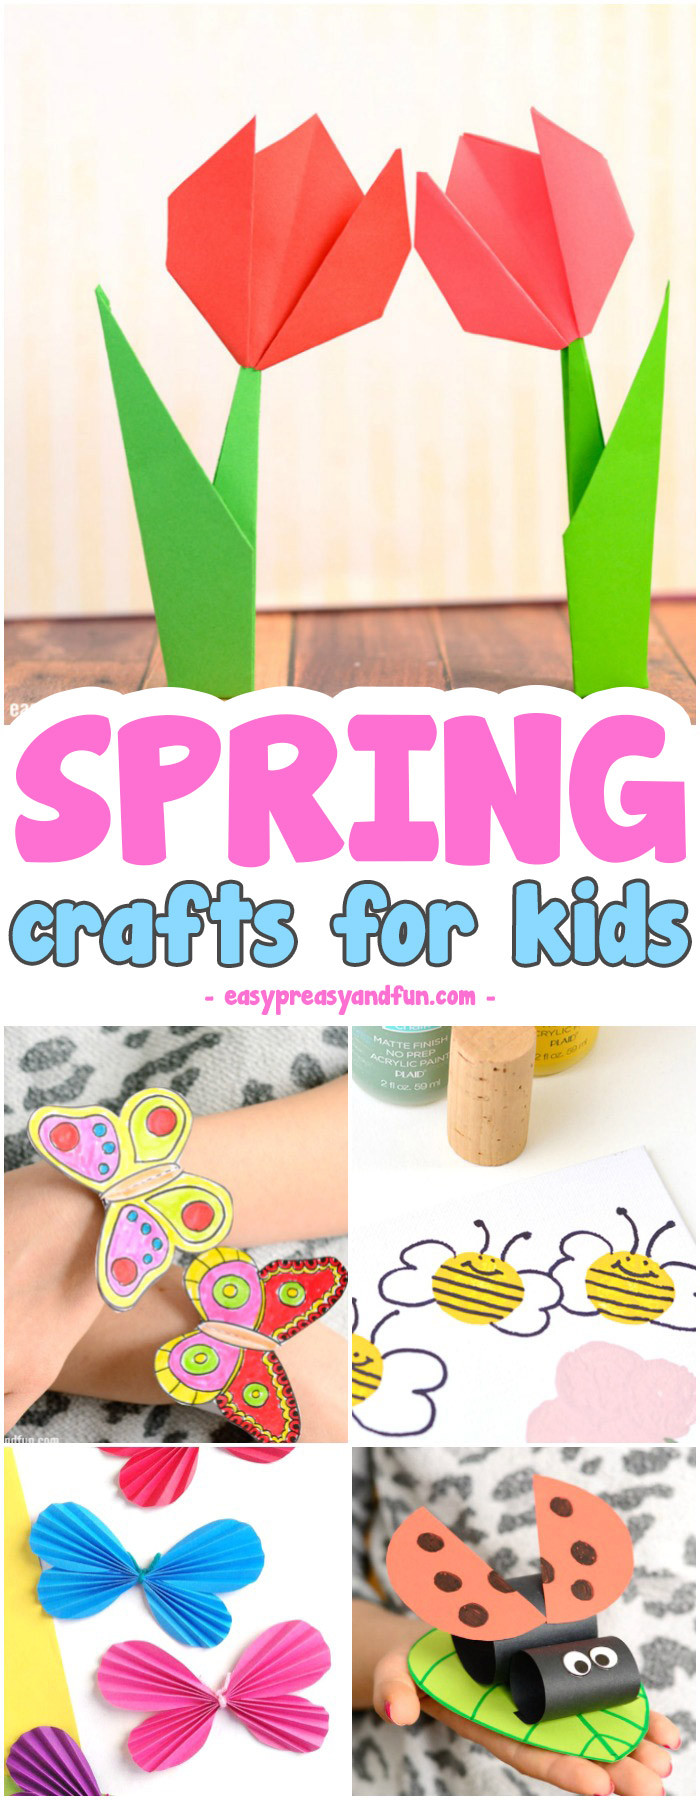 Preschool Arts And Crafts Ideas  Spring Crafts for Kids Art and Craft Project Ideas for